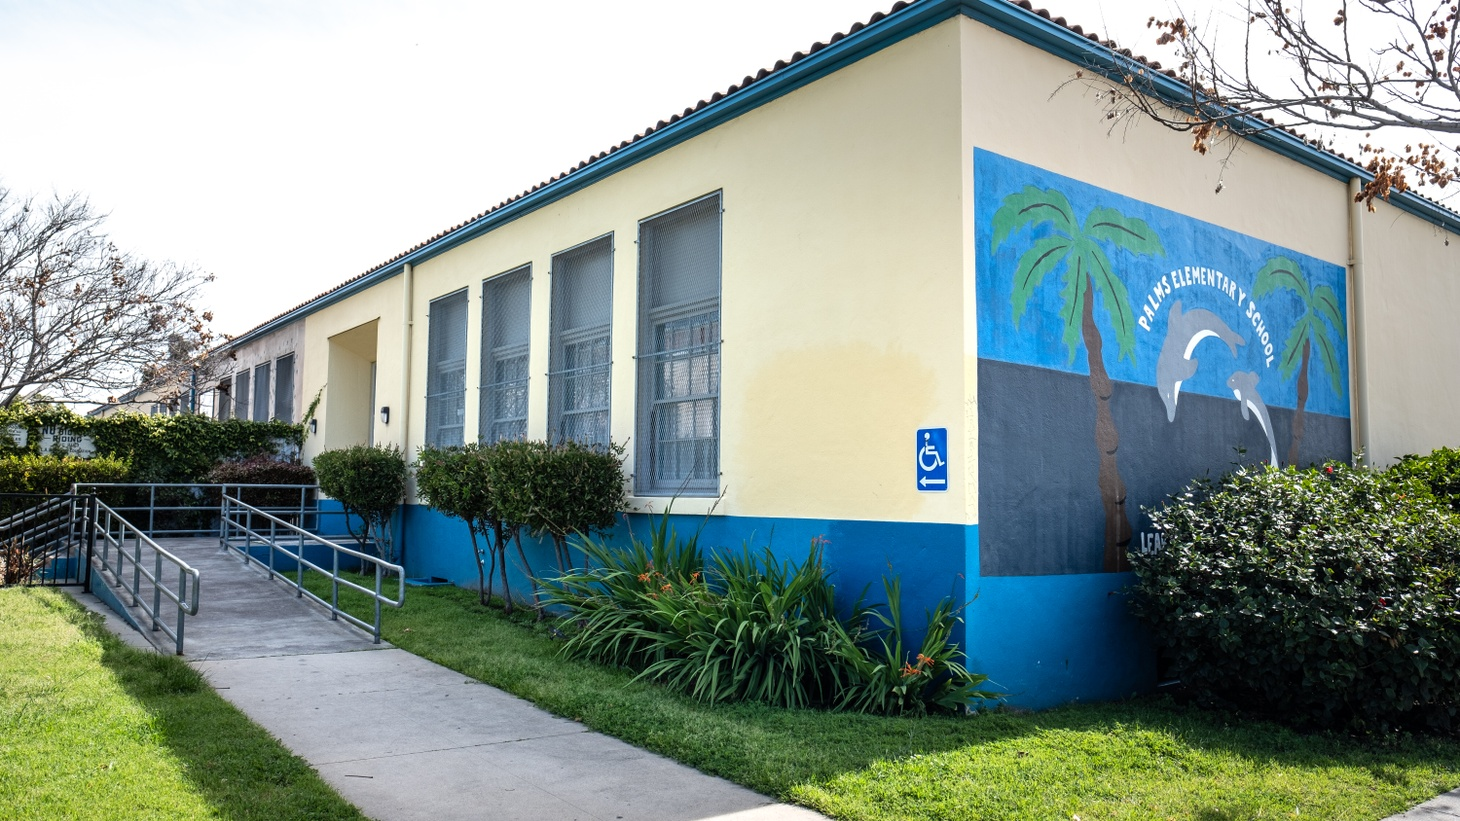 Palms Elementary School, part of LAUSD, sits empty. Getting kids back in classrooms during the pandemic is a giant challenge for educators and administrators.